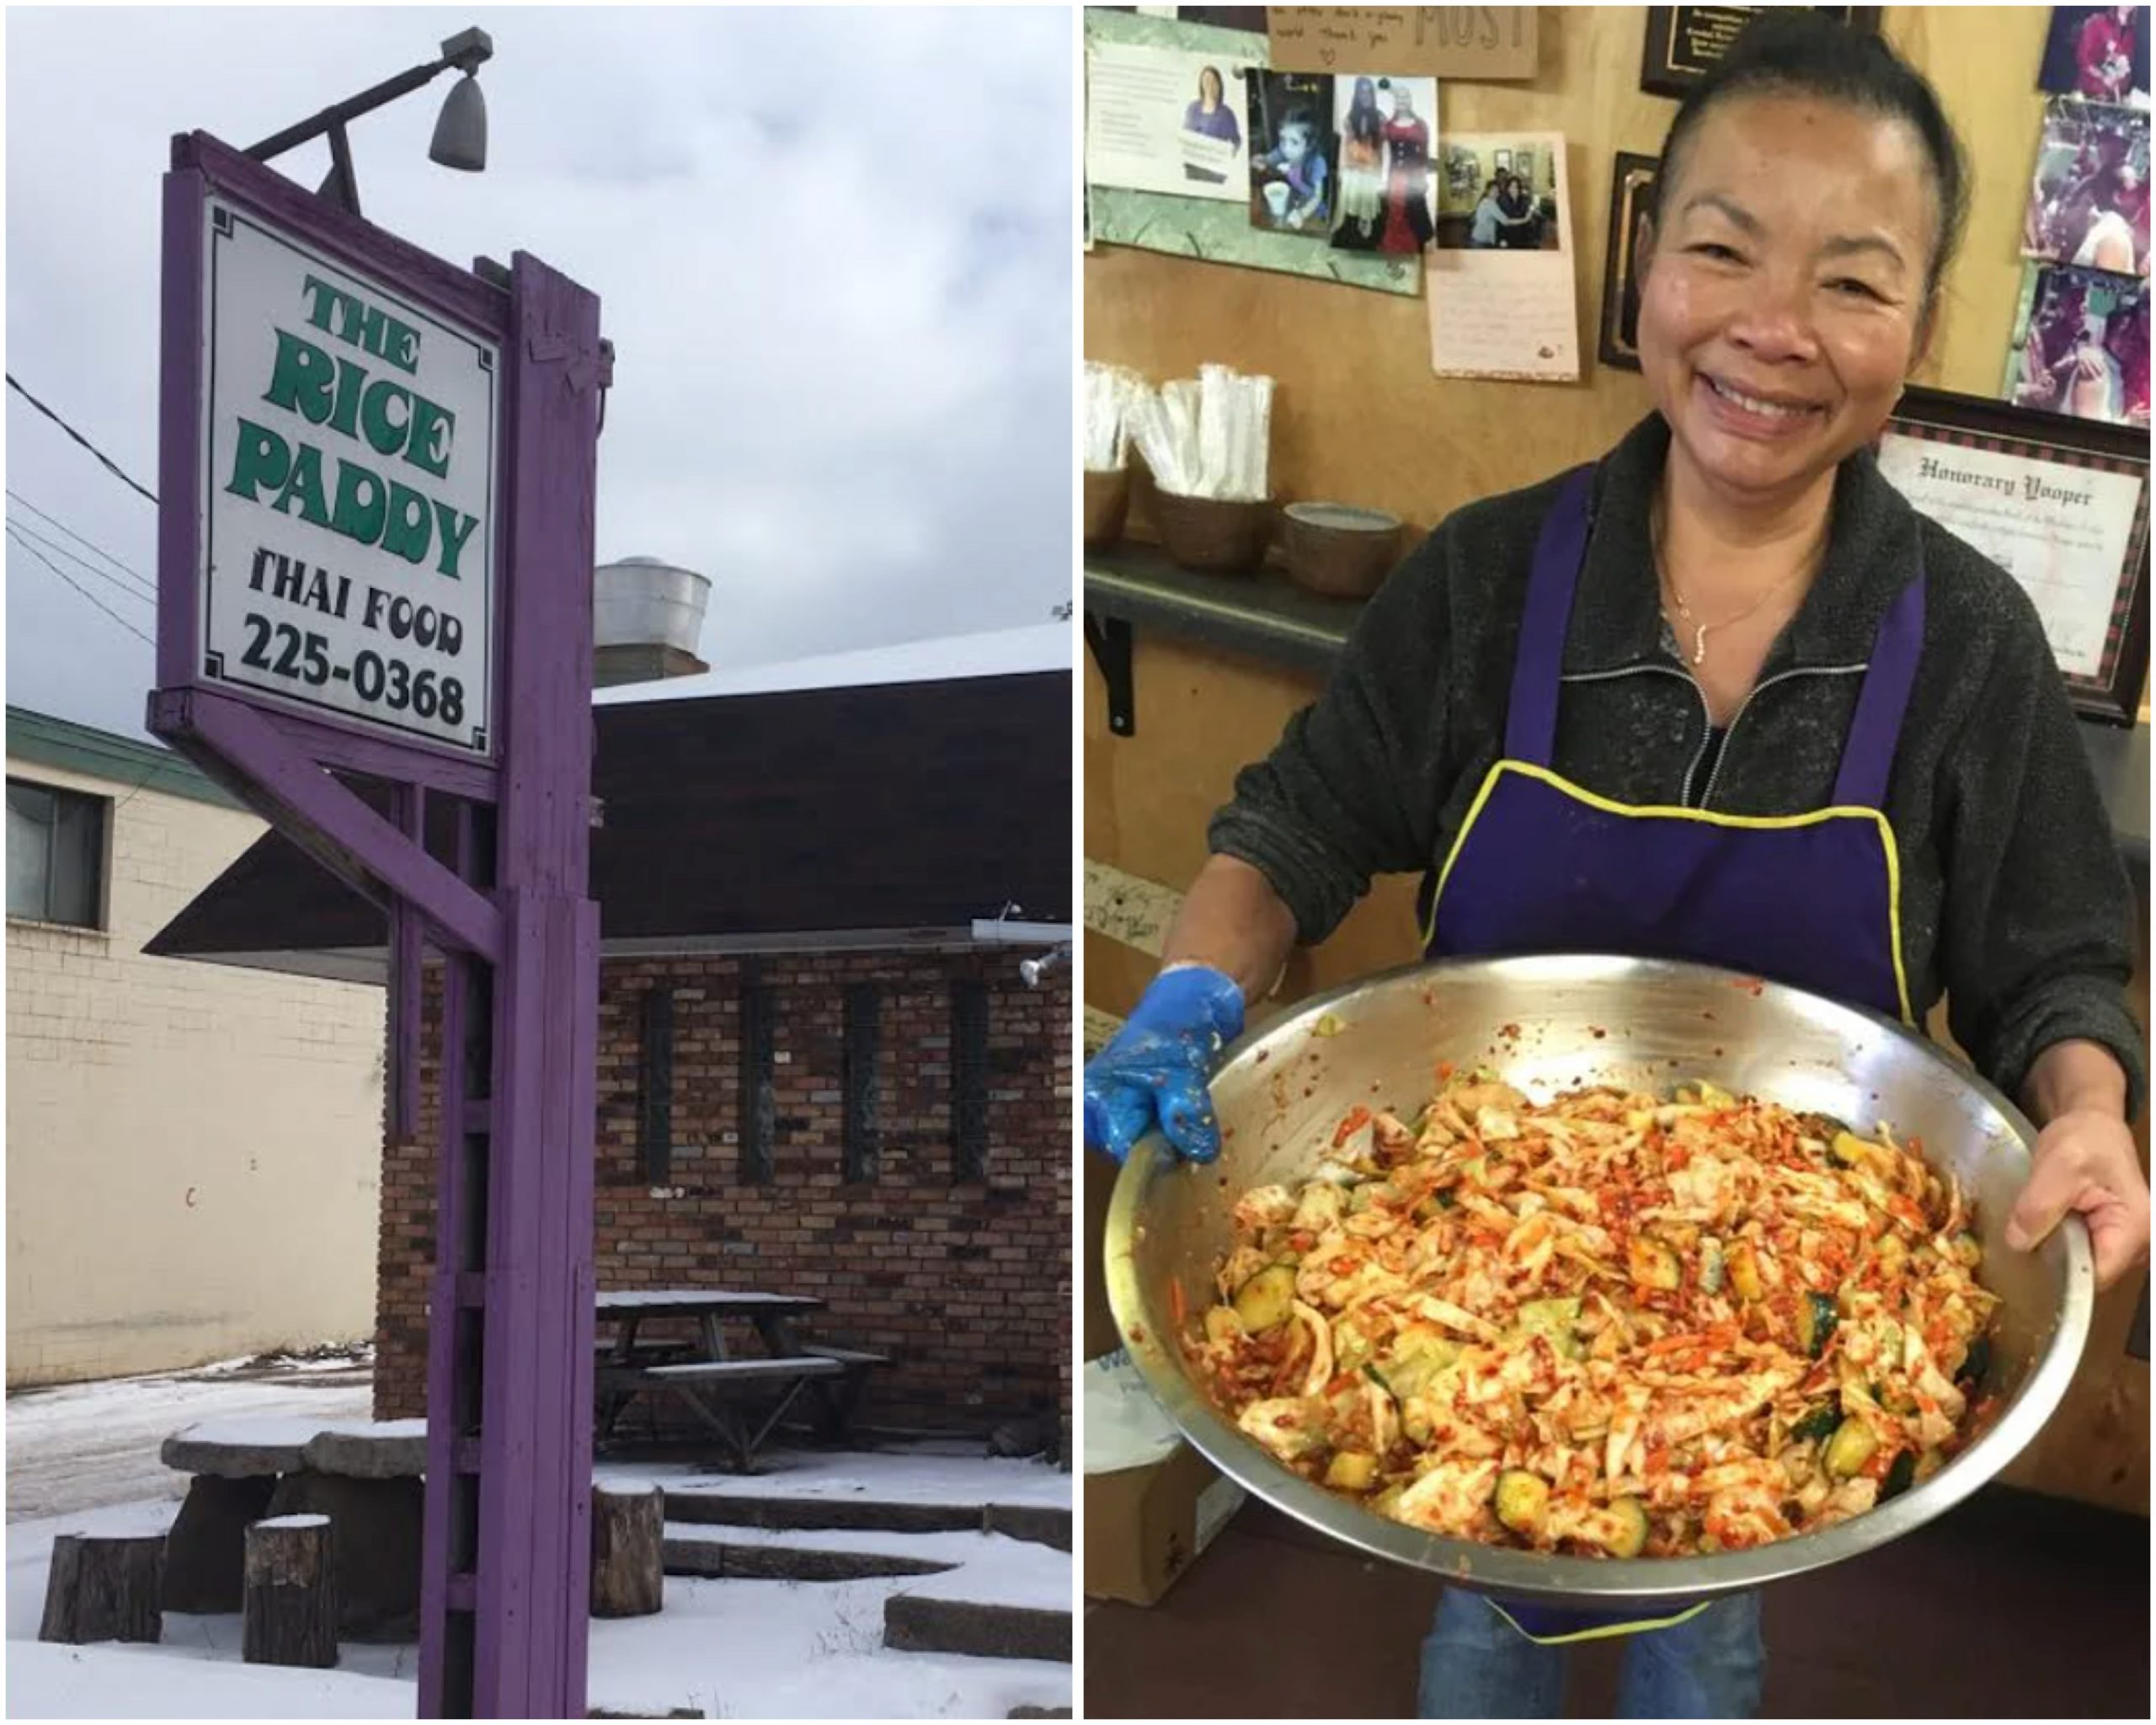 In light of the vitriol & xenophobia toward Asian-Americans (words matter, folks) + the economic impact on those families, we're sending some local love to our fav Asian restaurants.